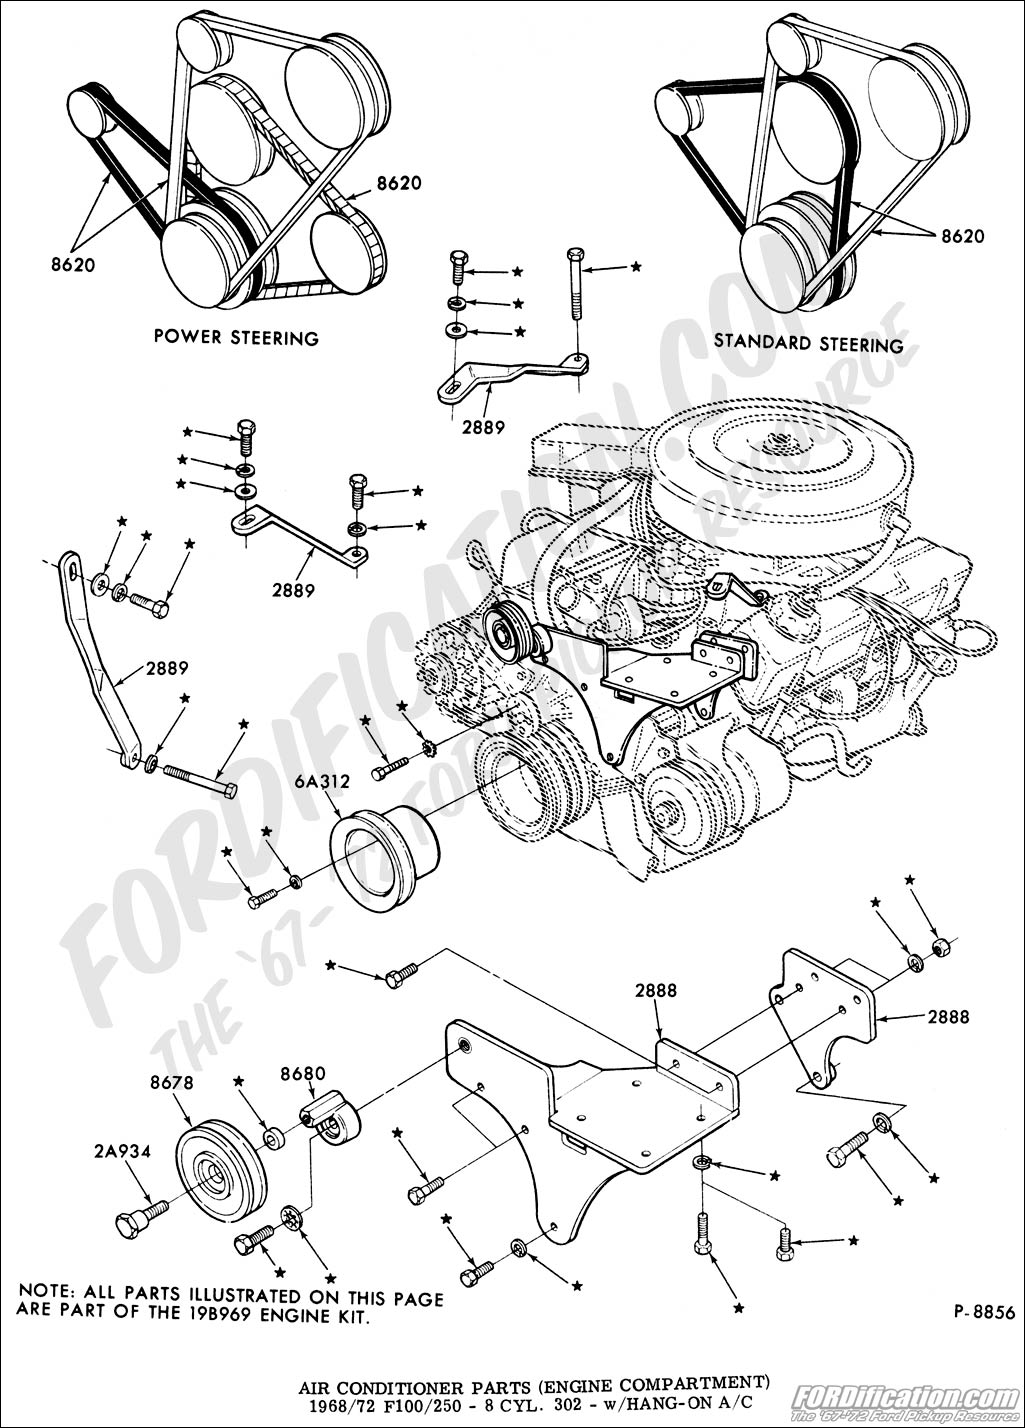 1978 ford 302 engine diagram ford truck technical drawings and schematics - section f ... 1969 ford 302 engine diagram #6